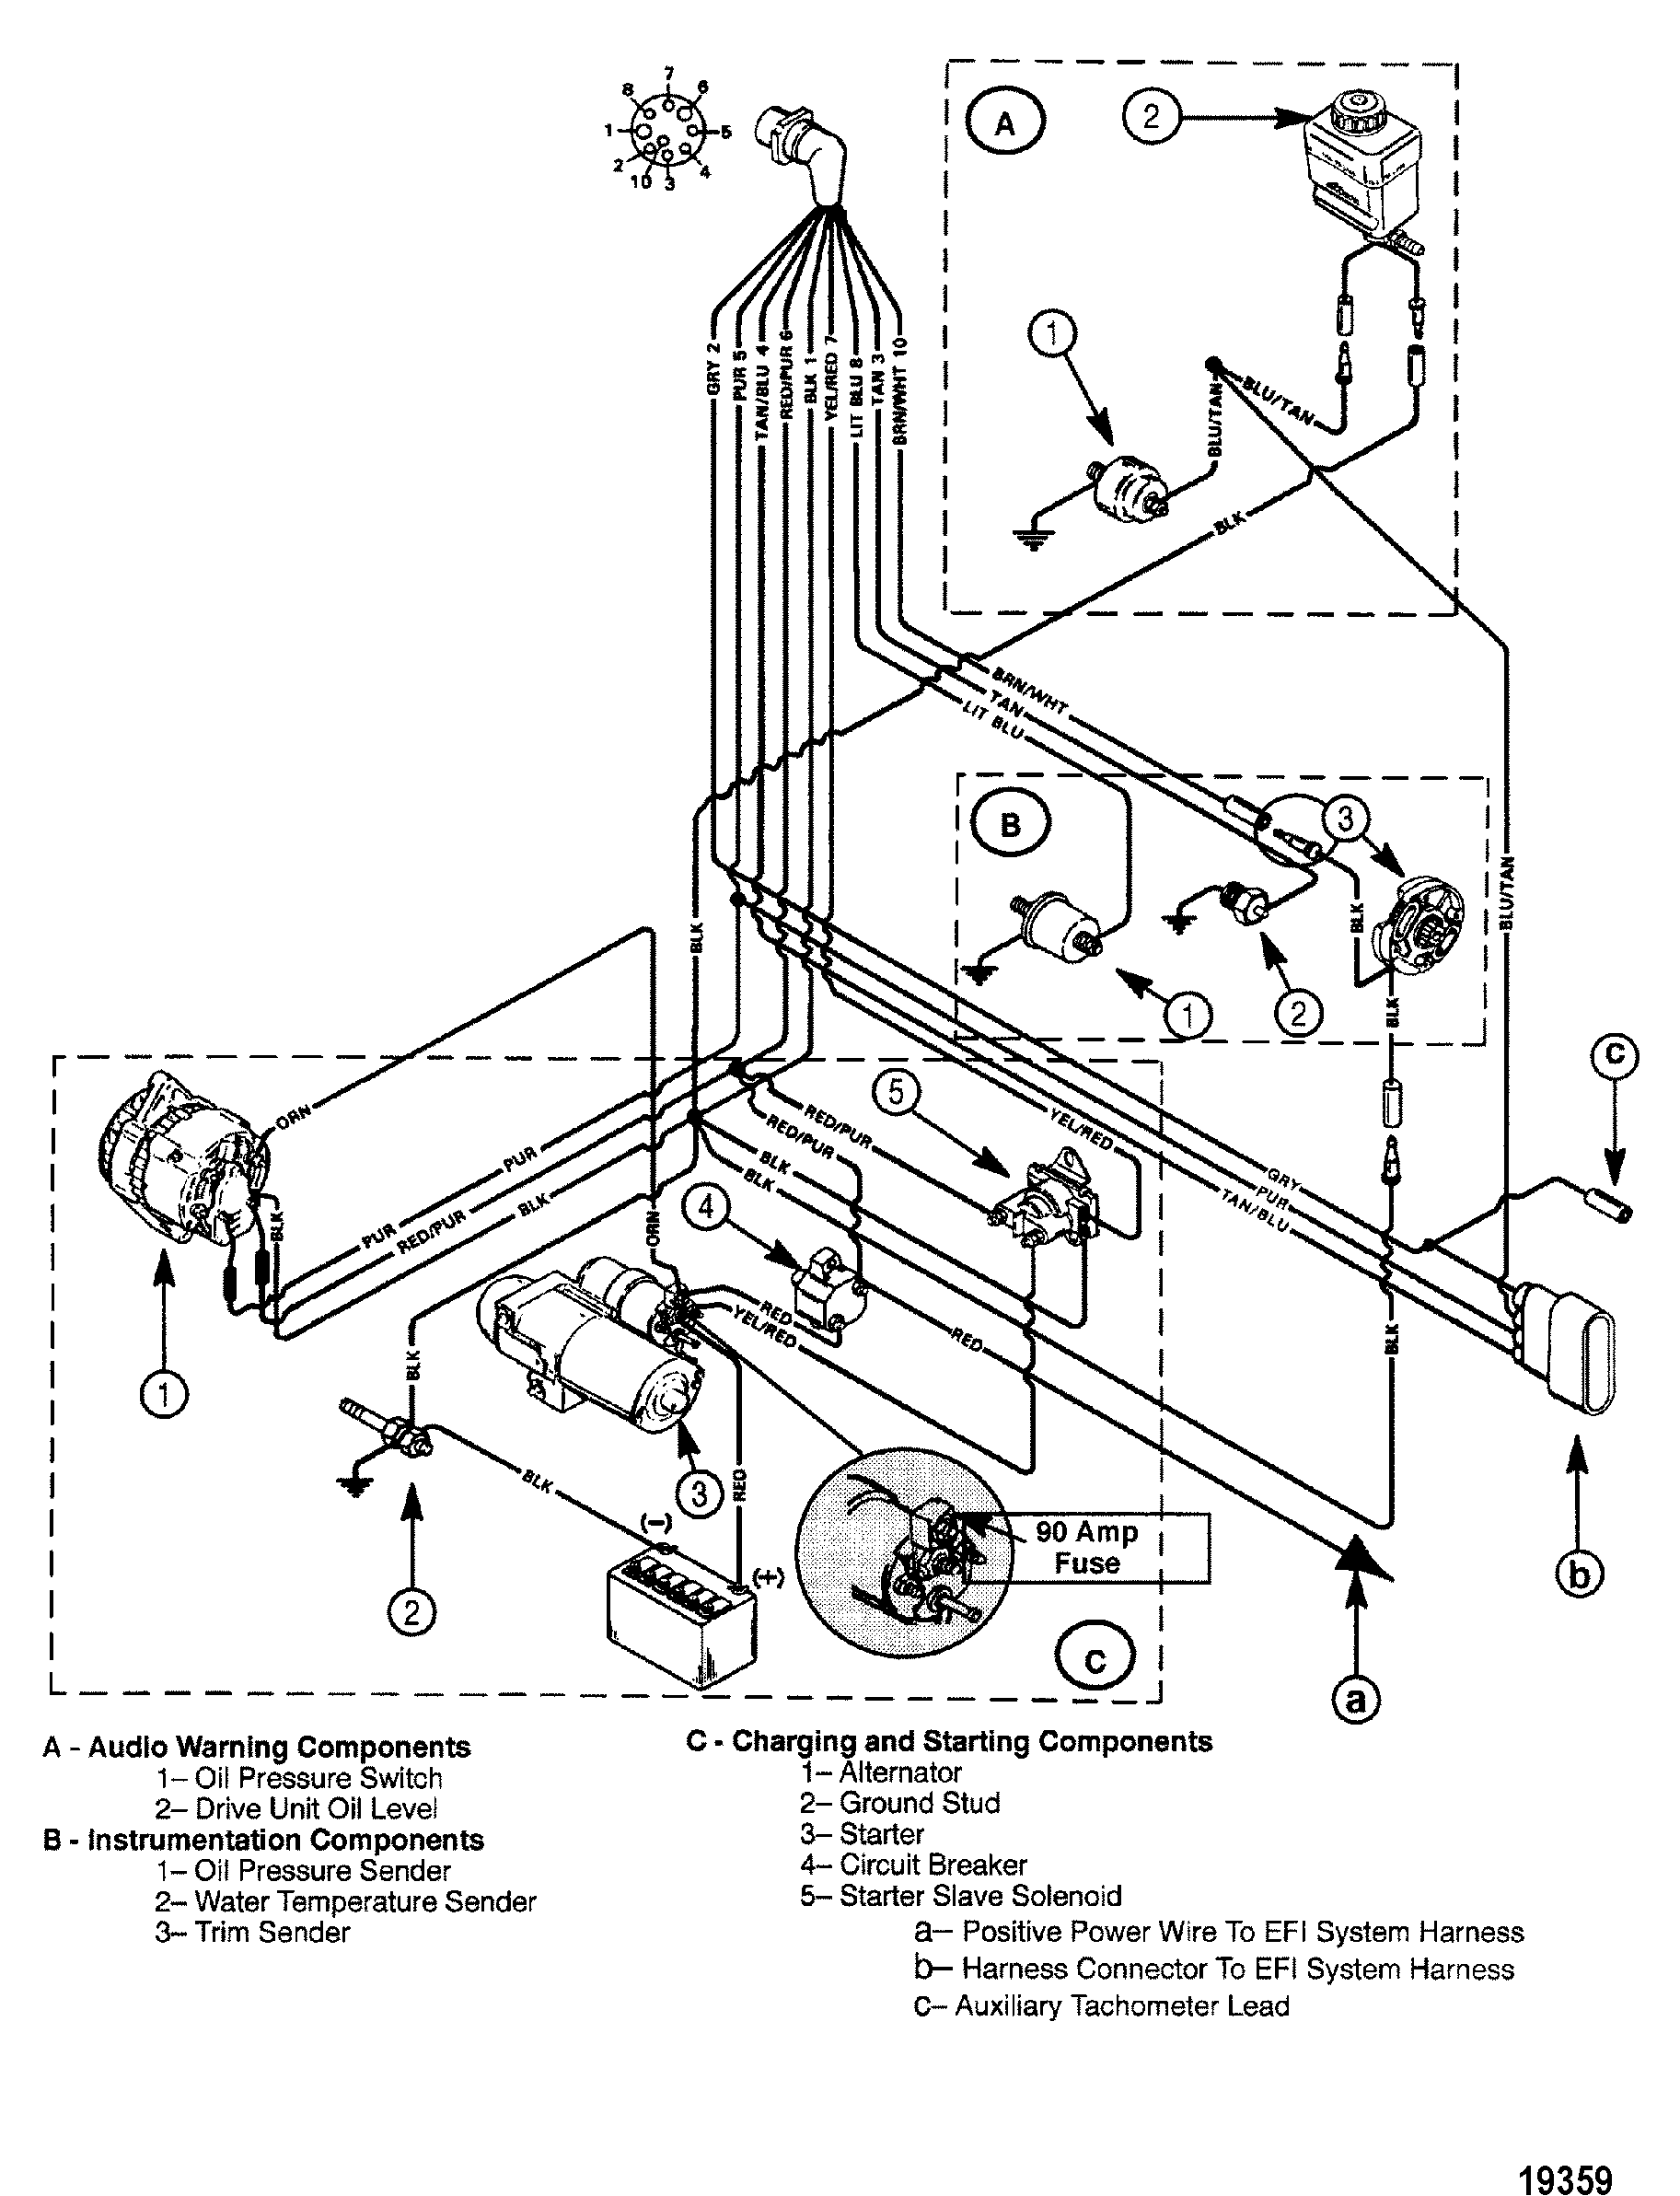 8n wiring diagram with 5 7 Mercruiser Engine Wiring Harness Diagram on 8n Ford Tractor Parts Diagram additionally 154489 9n 2n 8n Wire Diagrams further Ford 4000 Tractor Transmission Diagram For in addition 338081 Starter Wiring Help as well John Deere Steering Hydraulic Cylinder Diagram.